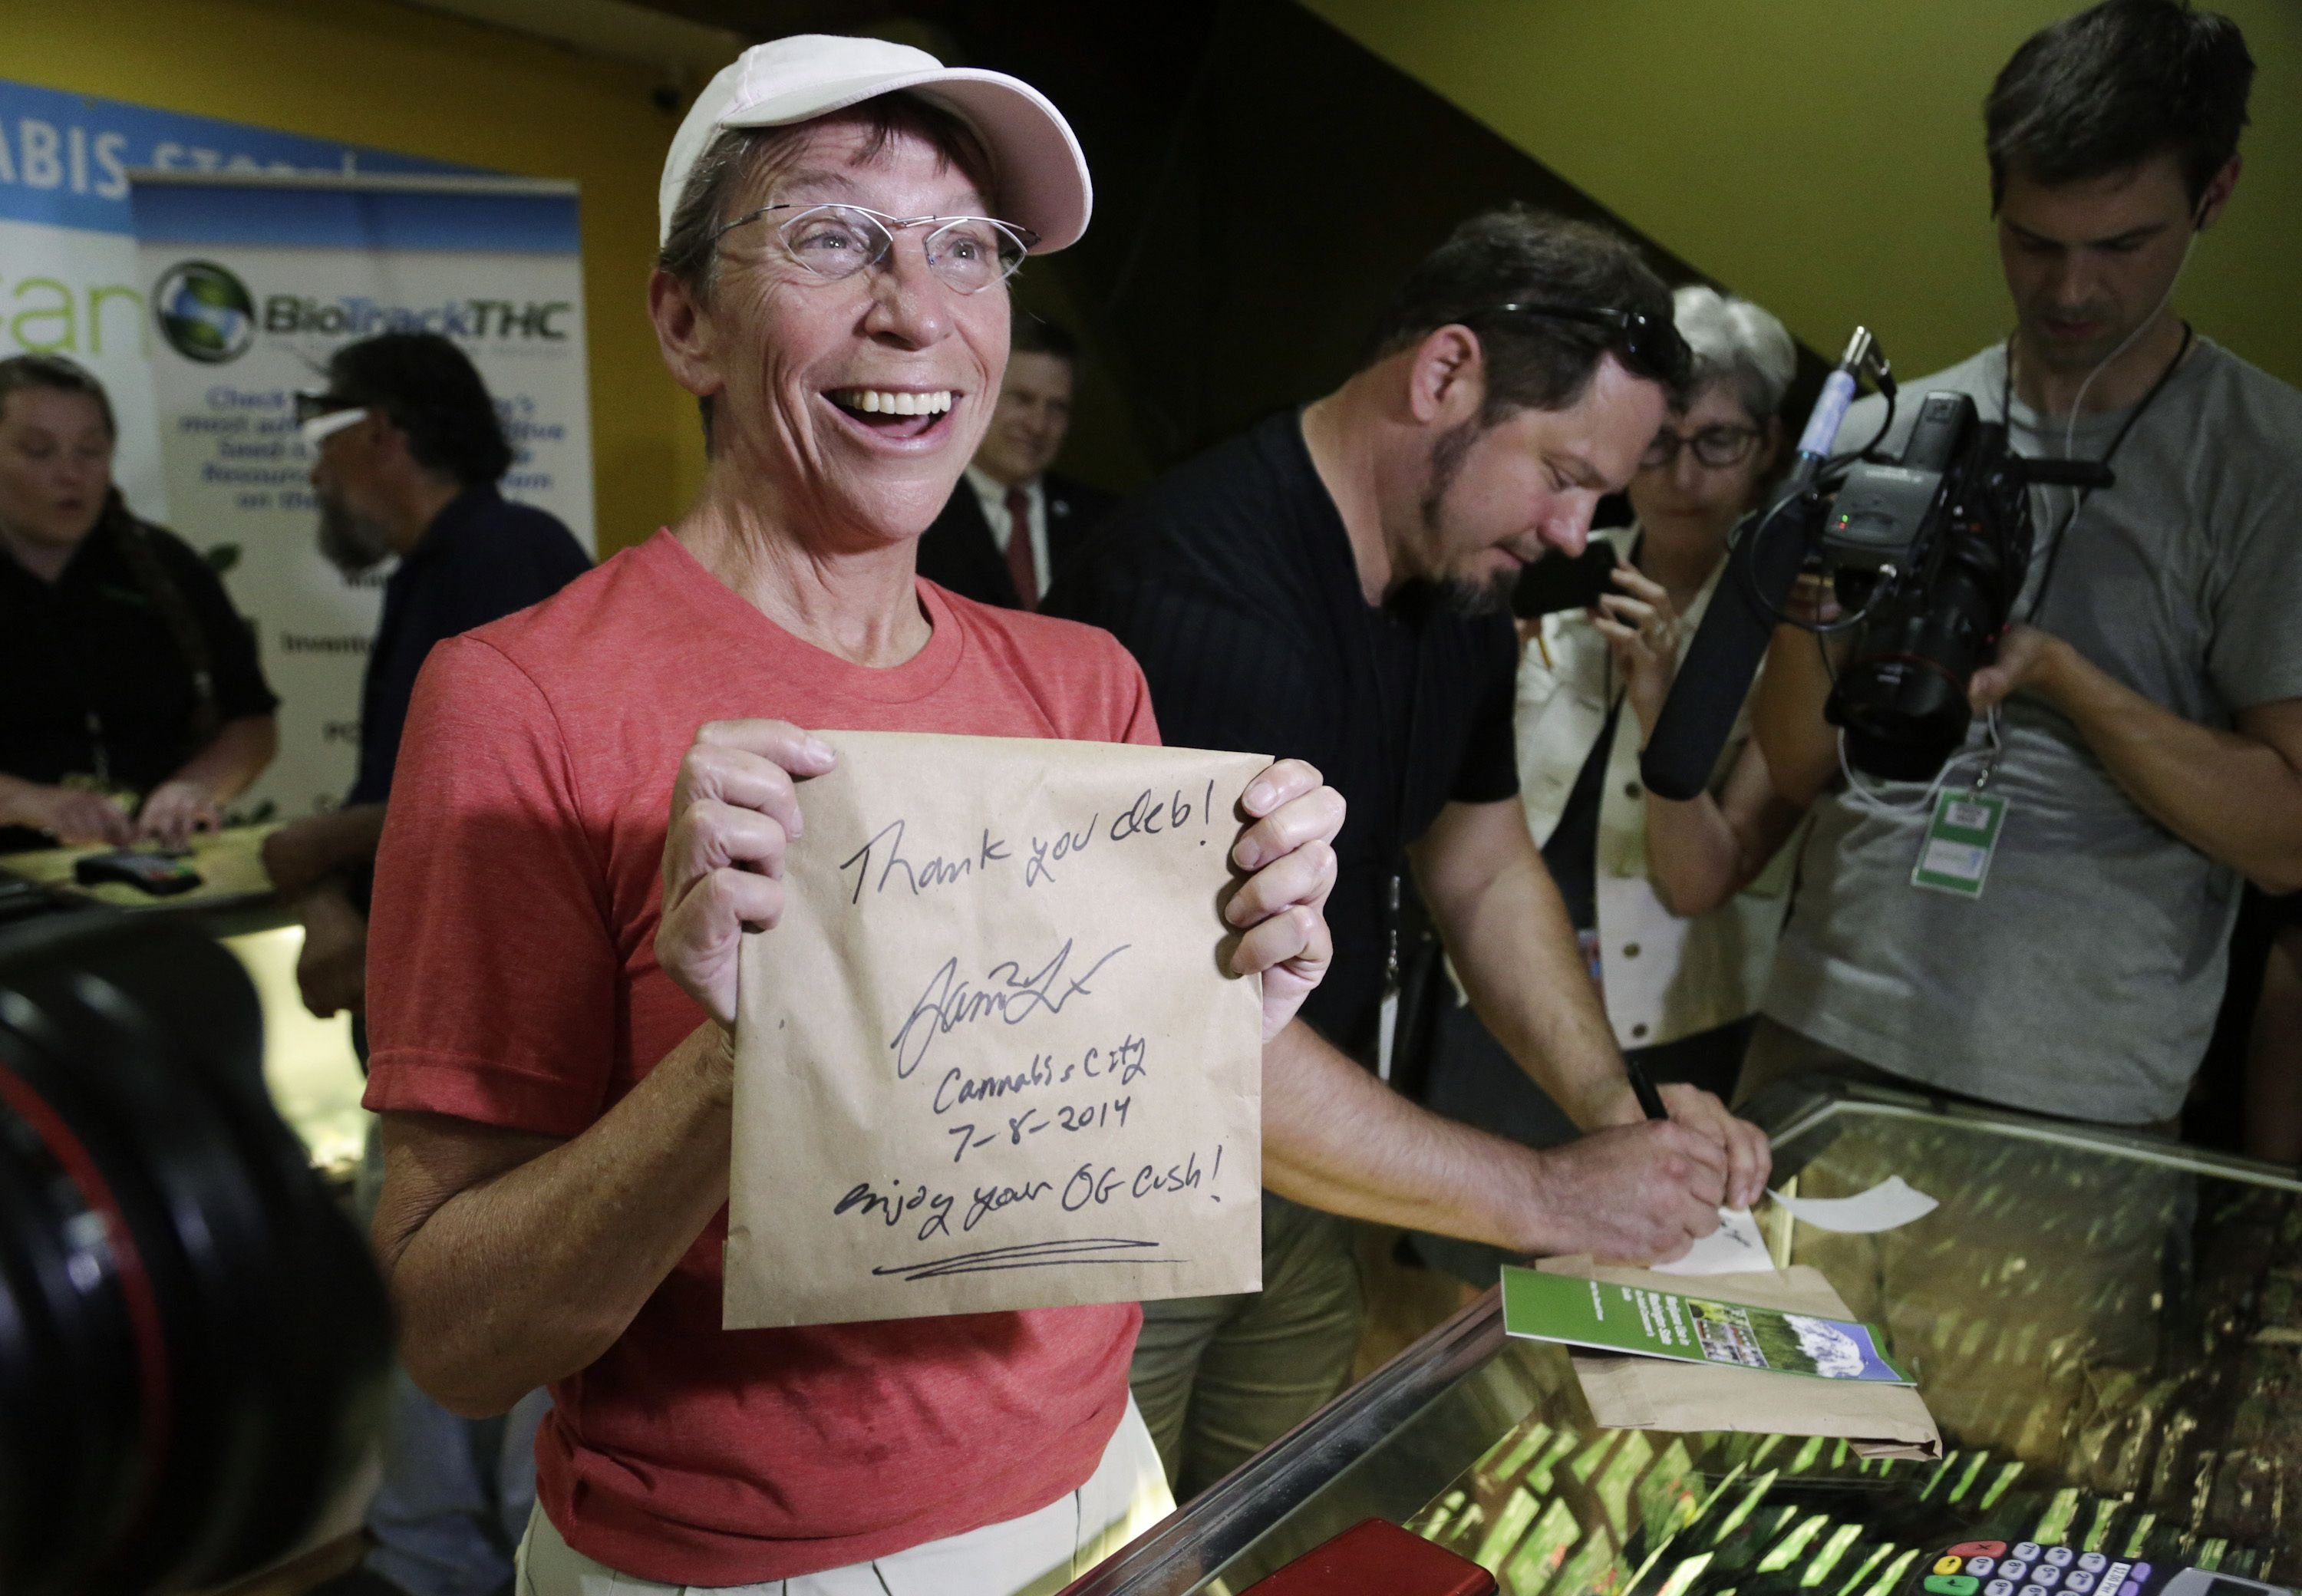 Deb Greene, the first customer at Cannabis City, holds up her purchase signed by owner James Lathrop during the first day of legal retail marijuana sales in Seattle on July 8, 2014.